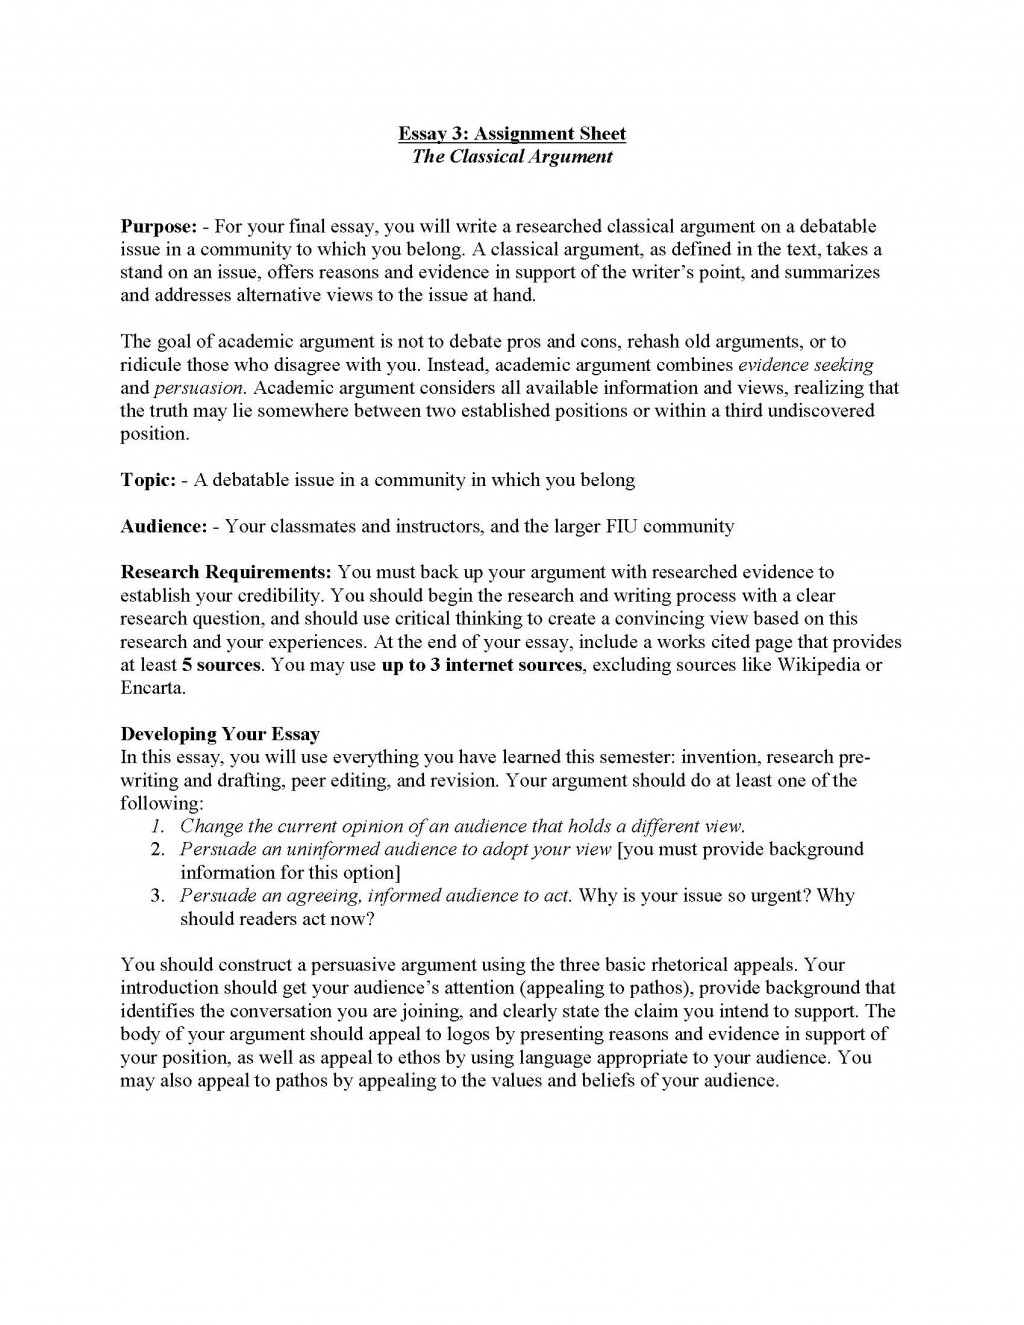 008 Essay Example Writing An Argument Classical Unit Assignment Page 1 Outstanding Sample Argumentative Ppt Outline Middle School Pdf Large